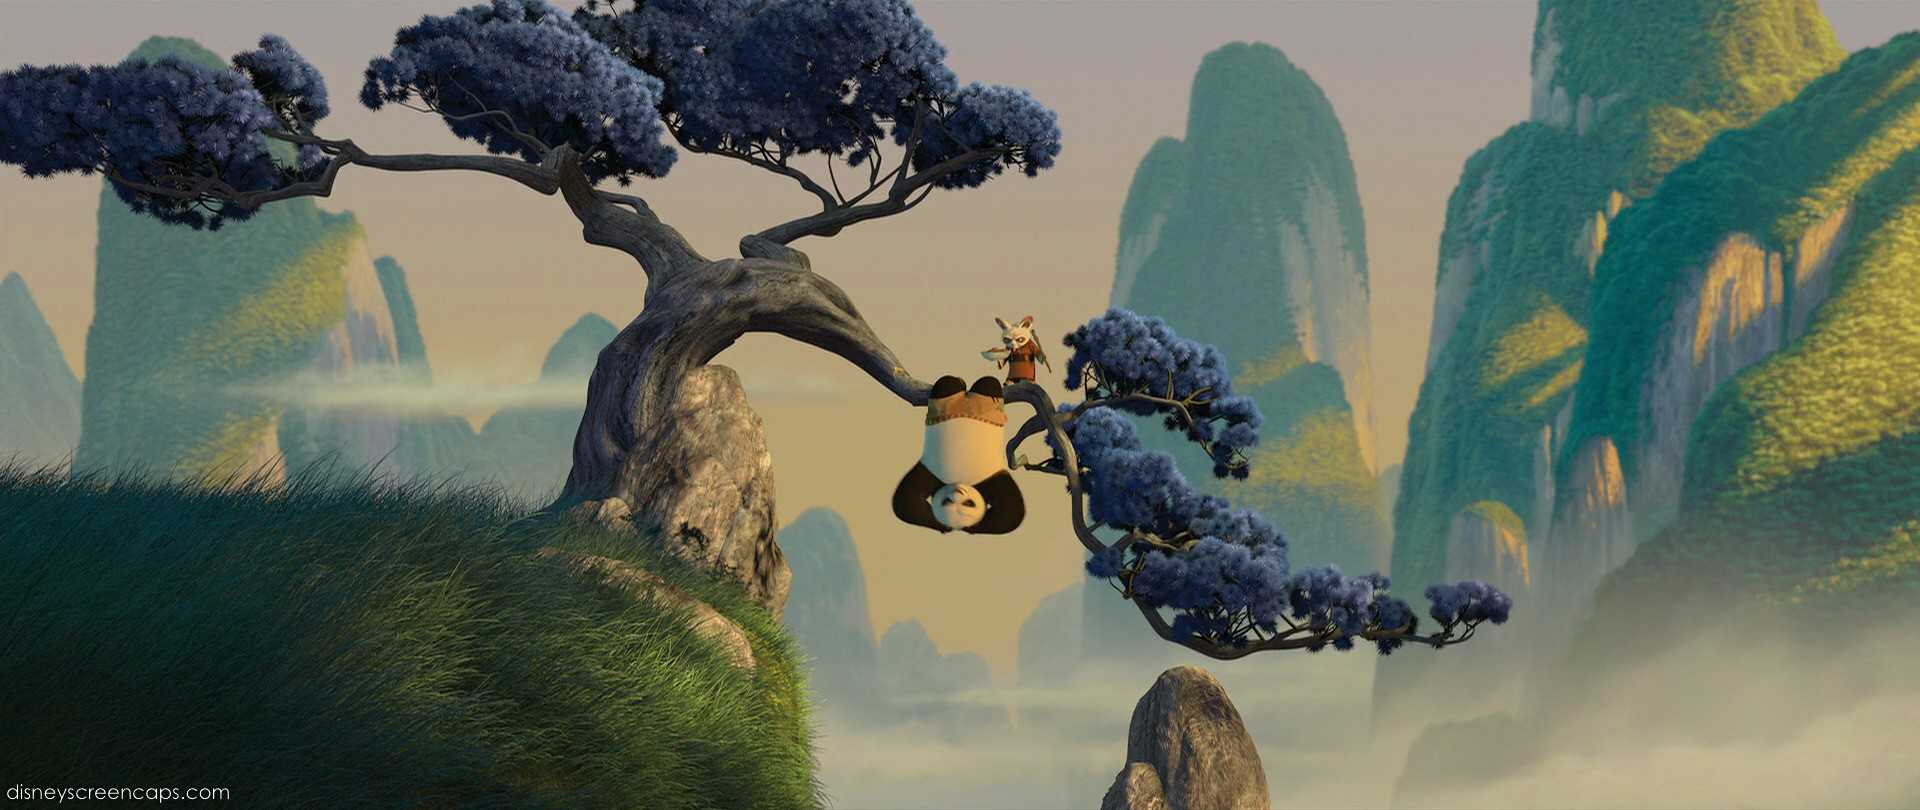 Why Do You Feel Pandaria Was Childish